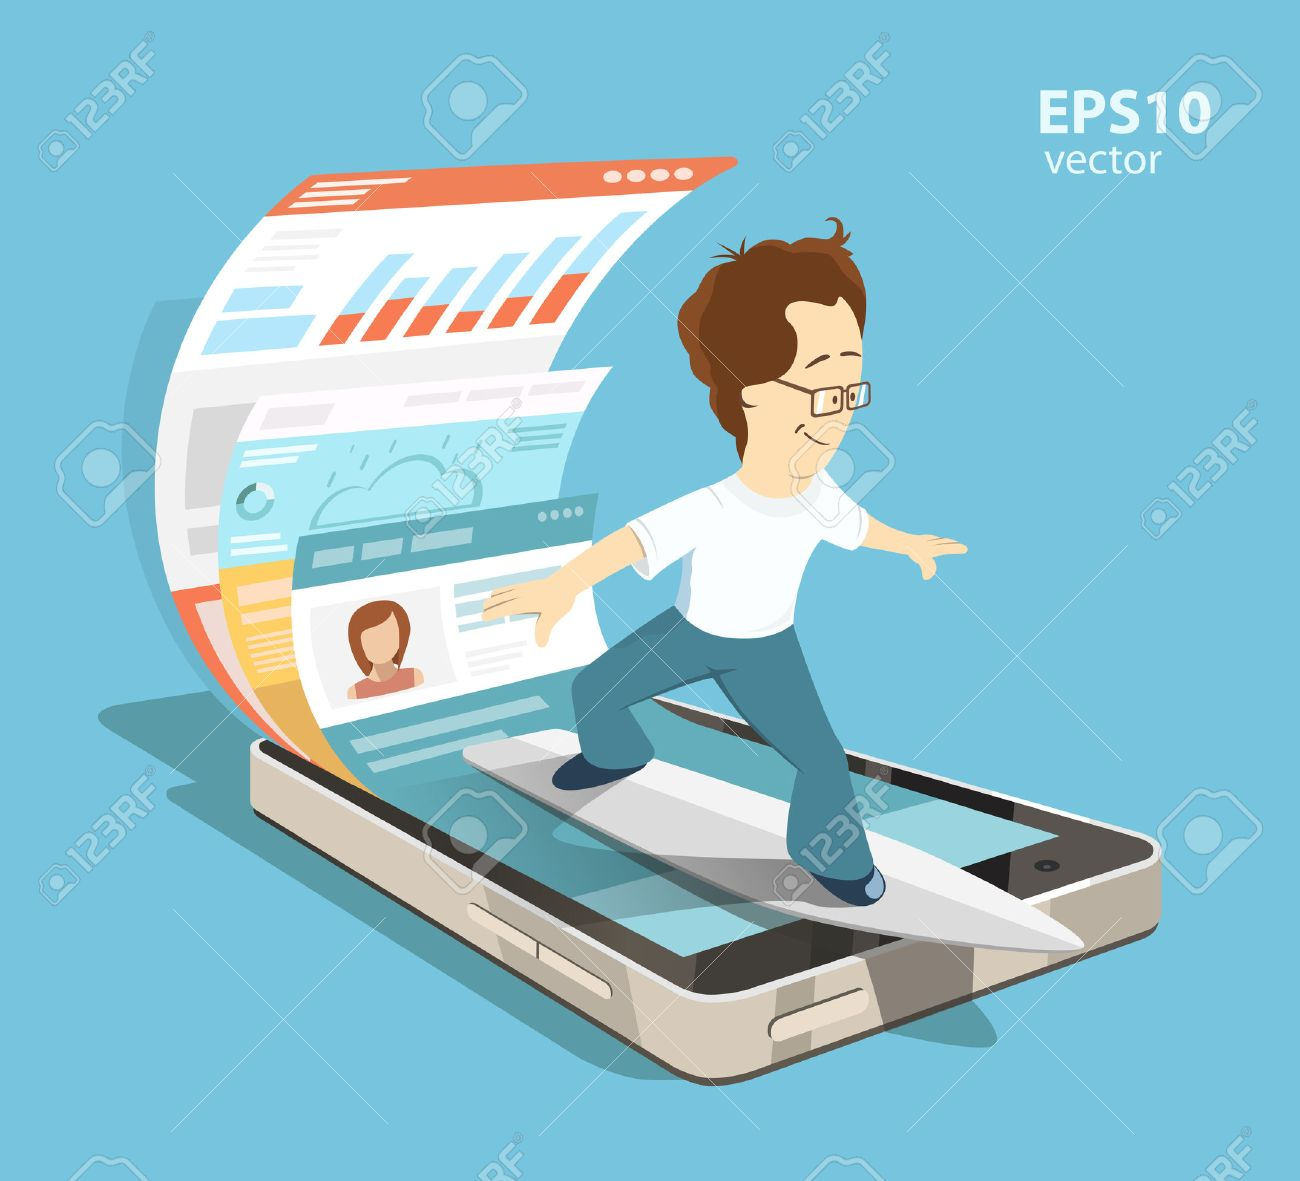 Young programmer software engineer. Mobile app application with ui and ux design development concept. Creative color illustration. - 50570052